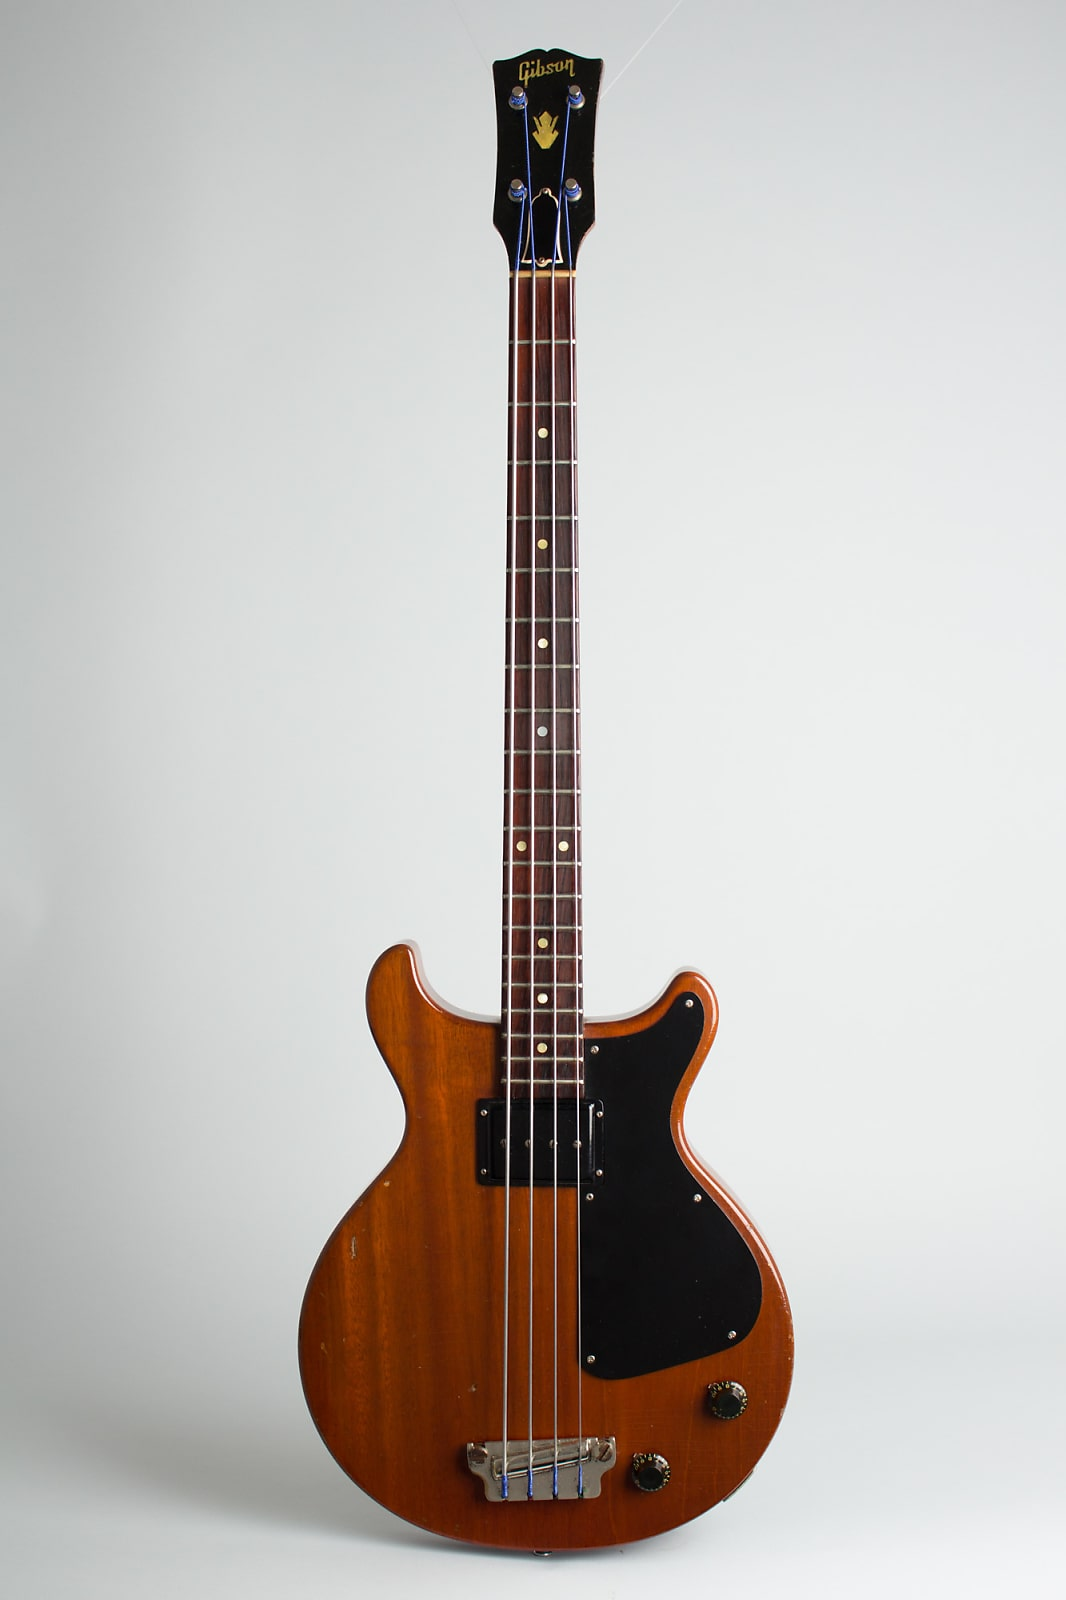 Gibson  EB-0 Solid Body Electric Bass Guitar (1959), ser. #9-2140, NO CASE case.